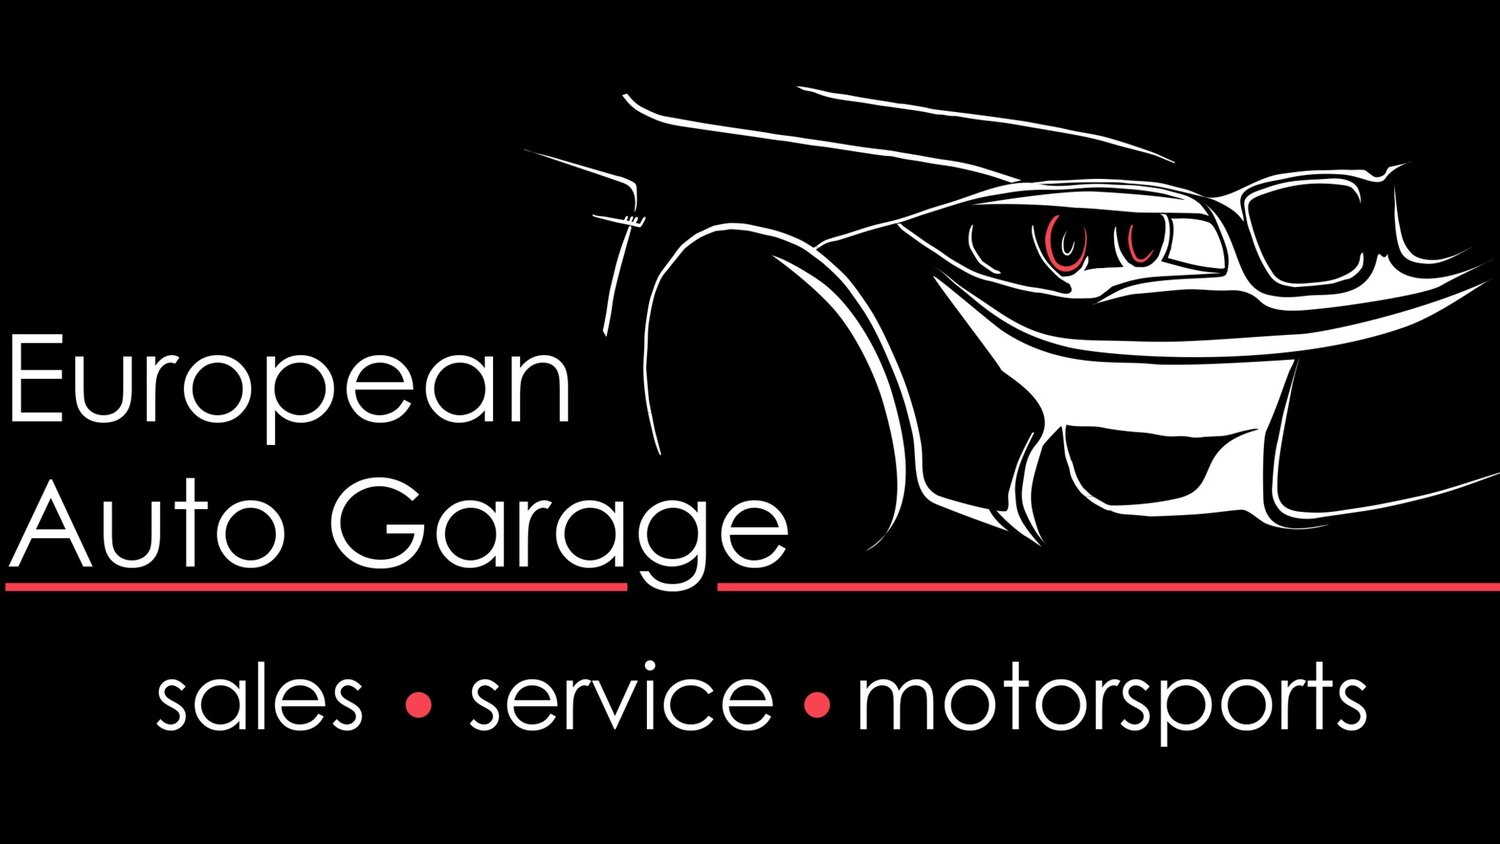 European Auto Garage - BMW, Mini, Volkswagen, Audi, Mercedes, Porsche, European Auto Repair